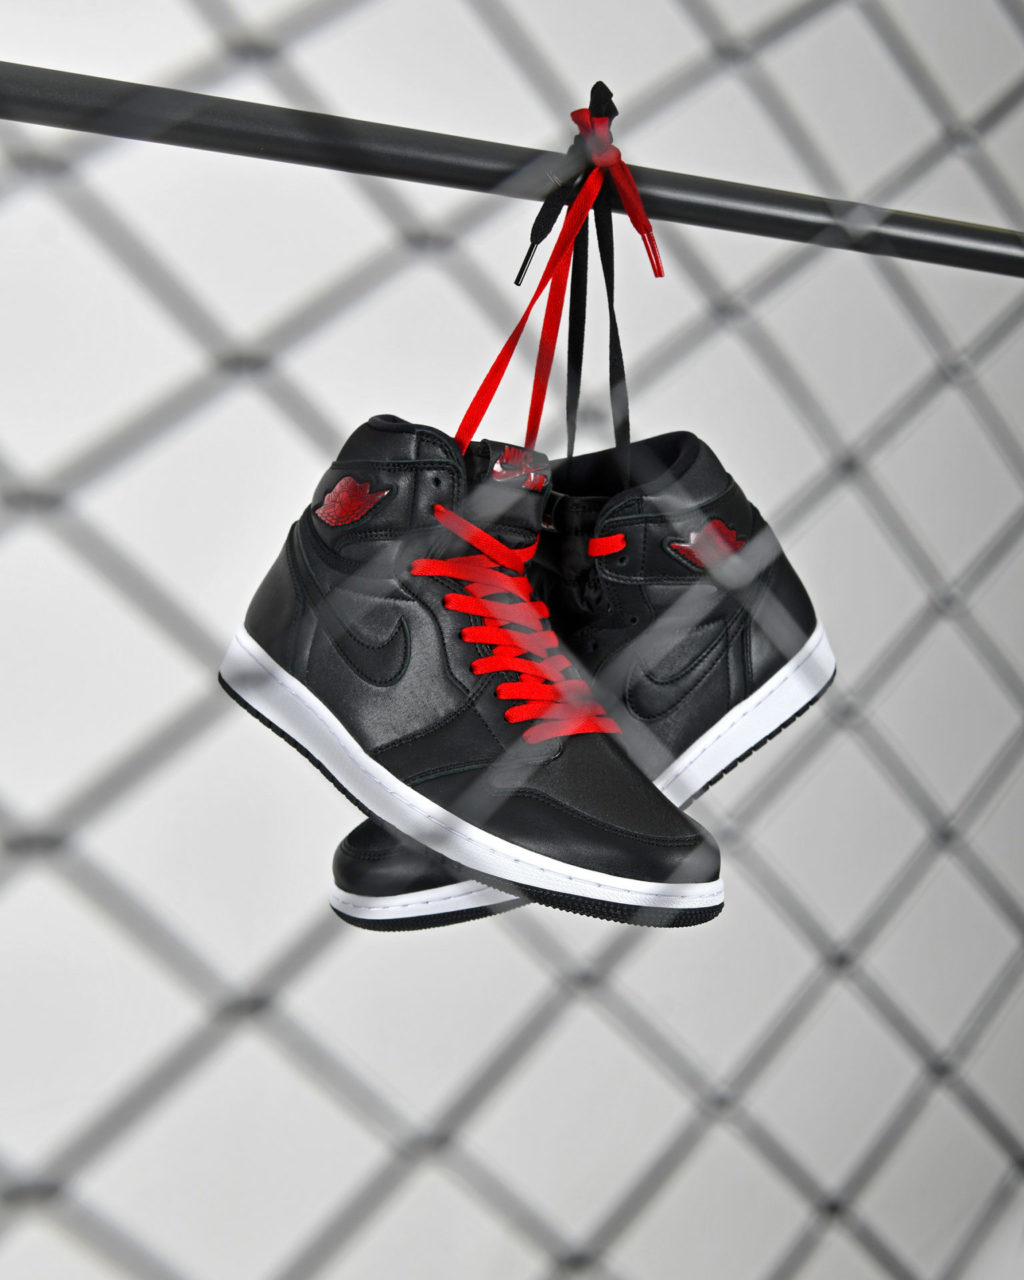 Air Jordan 1 OG Black Gym Red